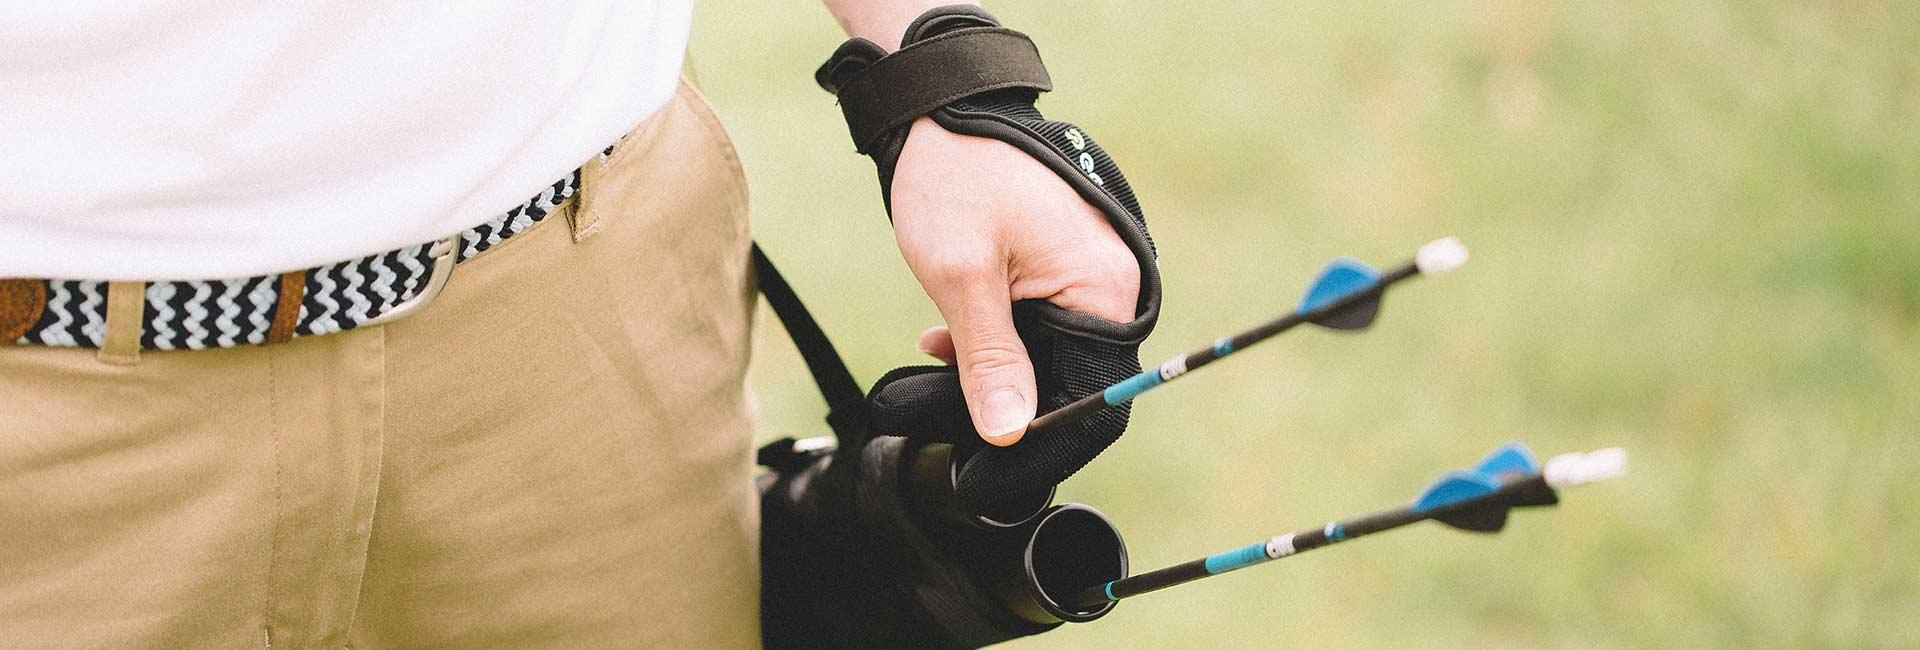 How To Choose Archery Accessories?